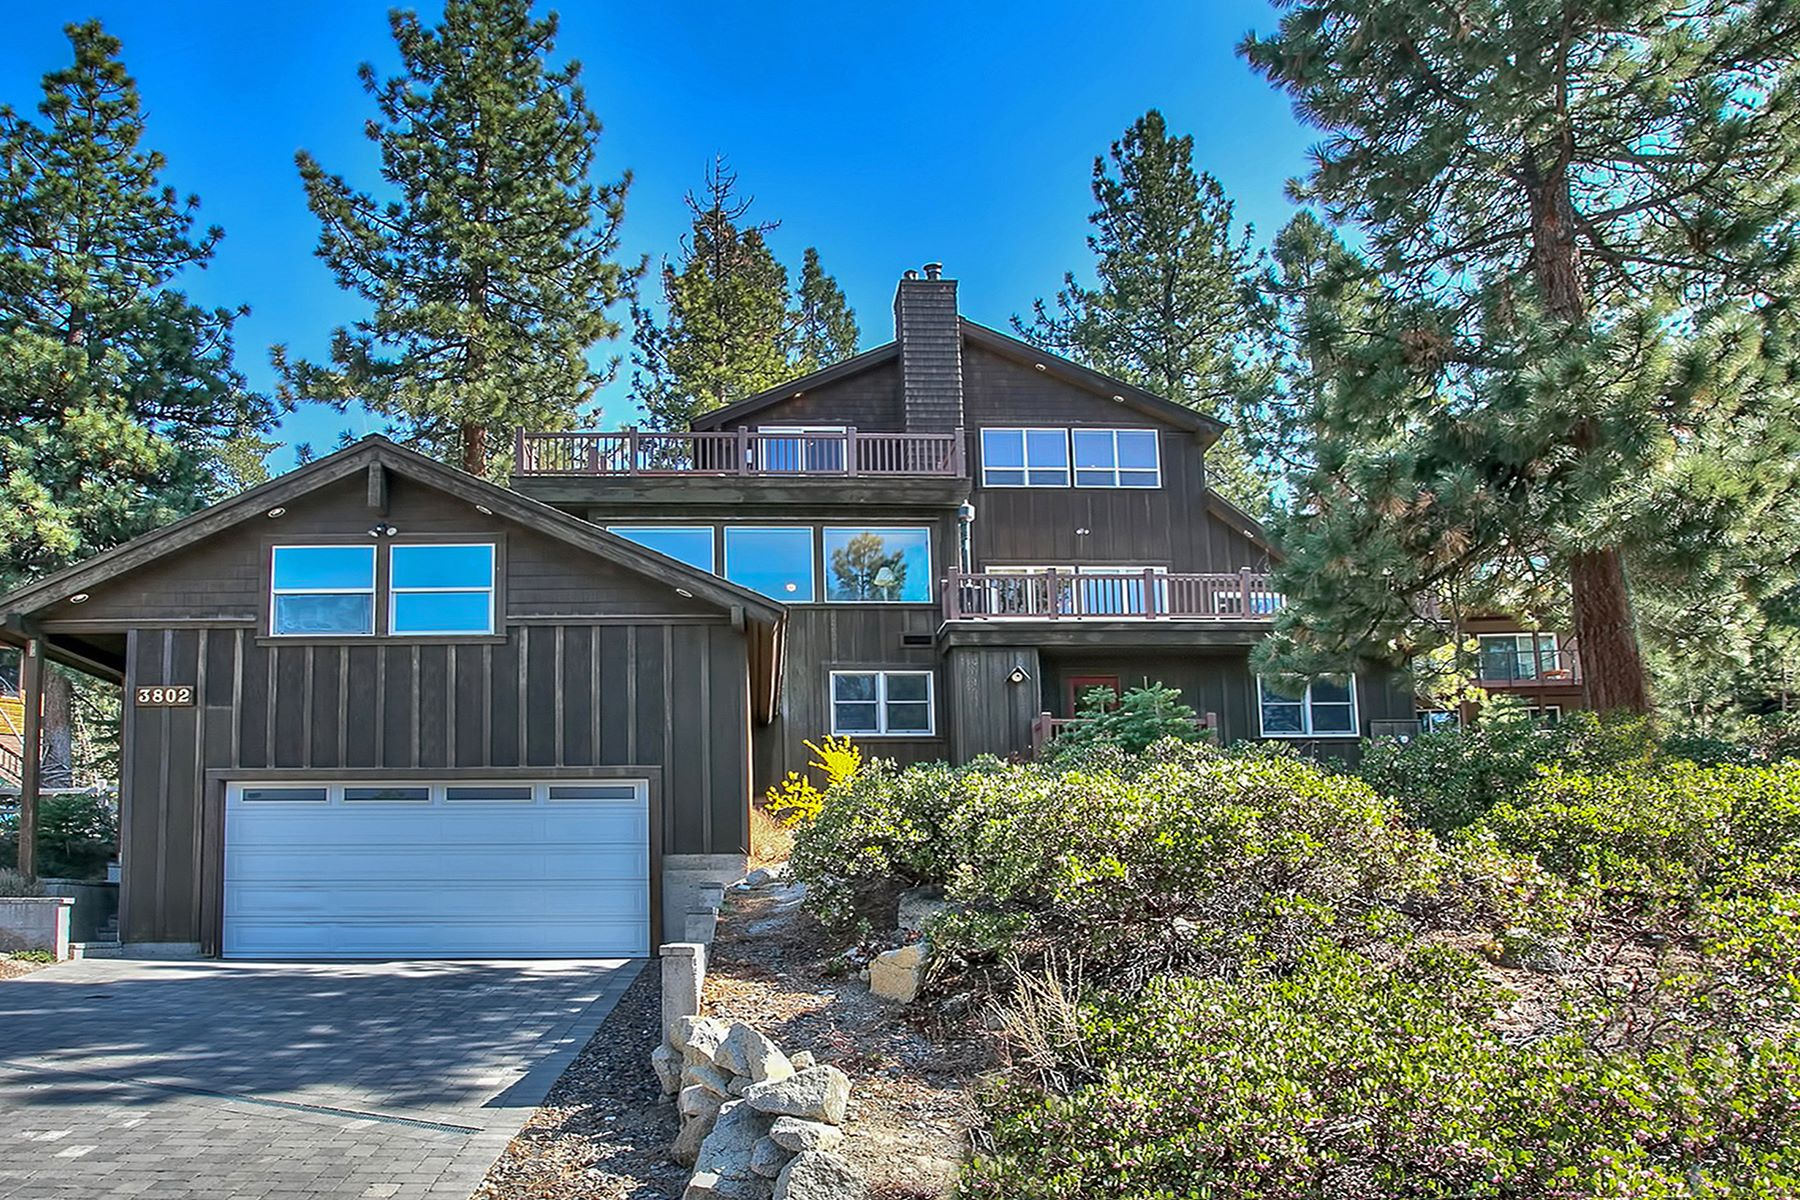 Casa Unifamiliar por un Venta en 3802 Lucinda Court 3802 Lucinda Court South Lake Tahoe, California 96150 Estados Unidos